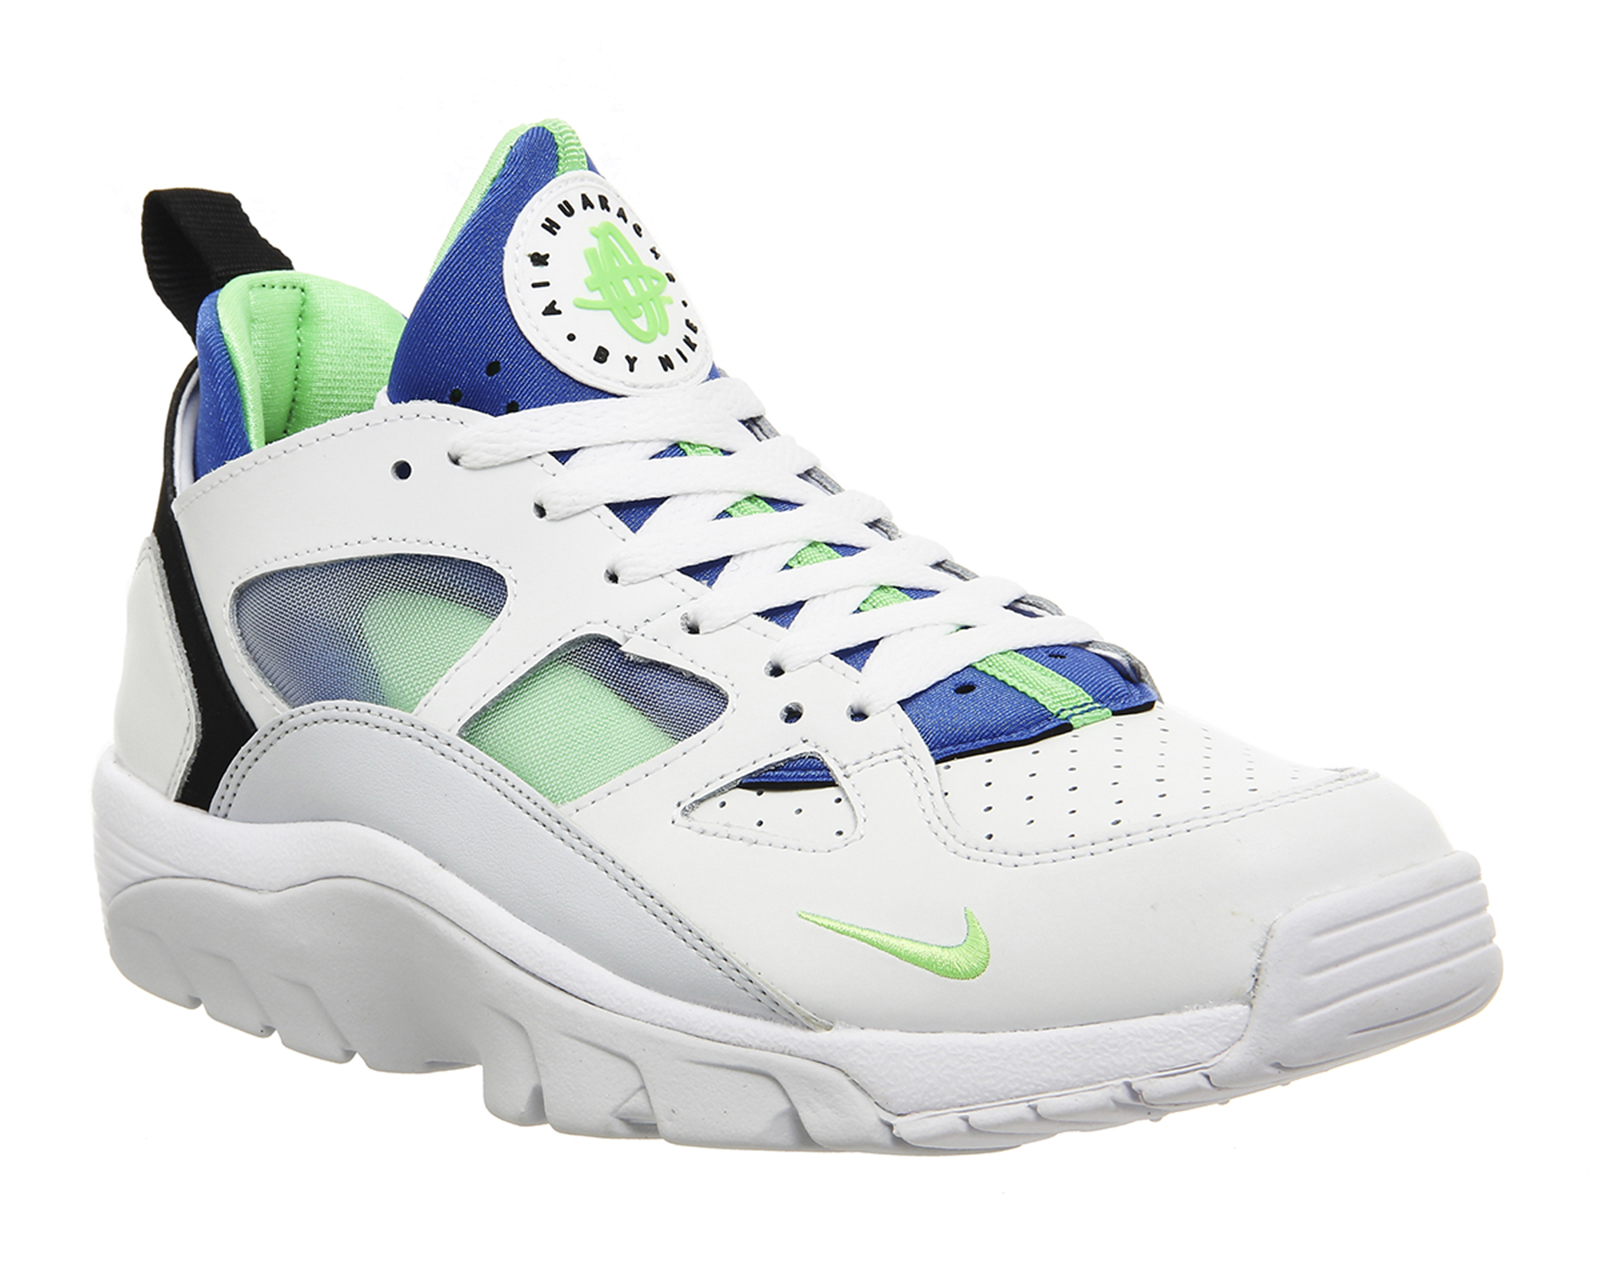 lyst nike air trainer huarache low in white for men. Black Bedroom Furniture Sets. Home Design Ideas